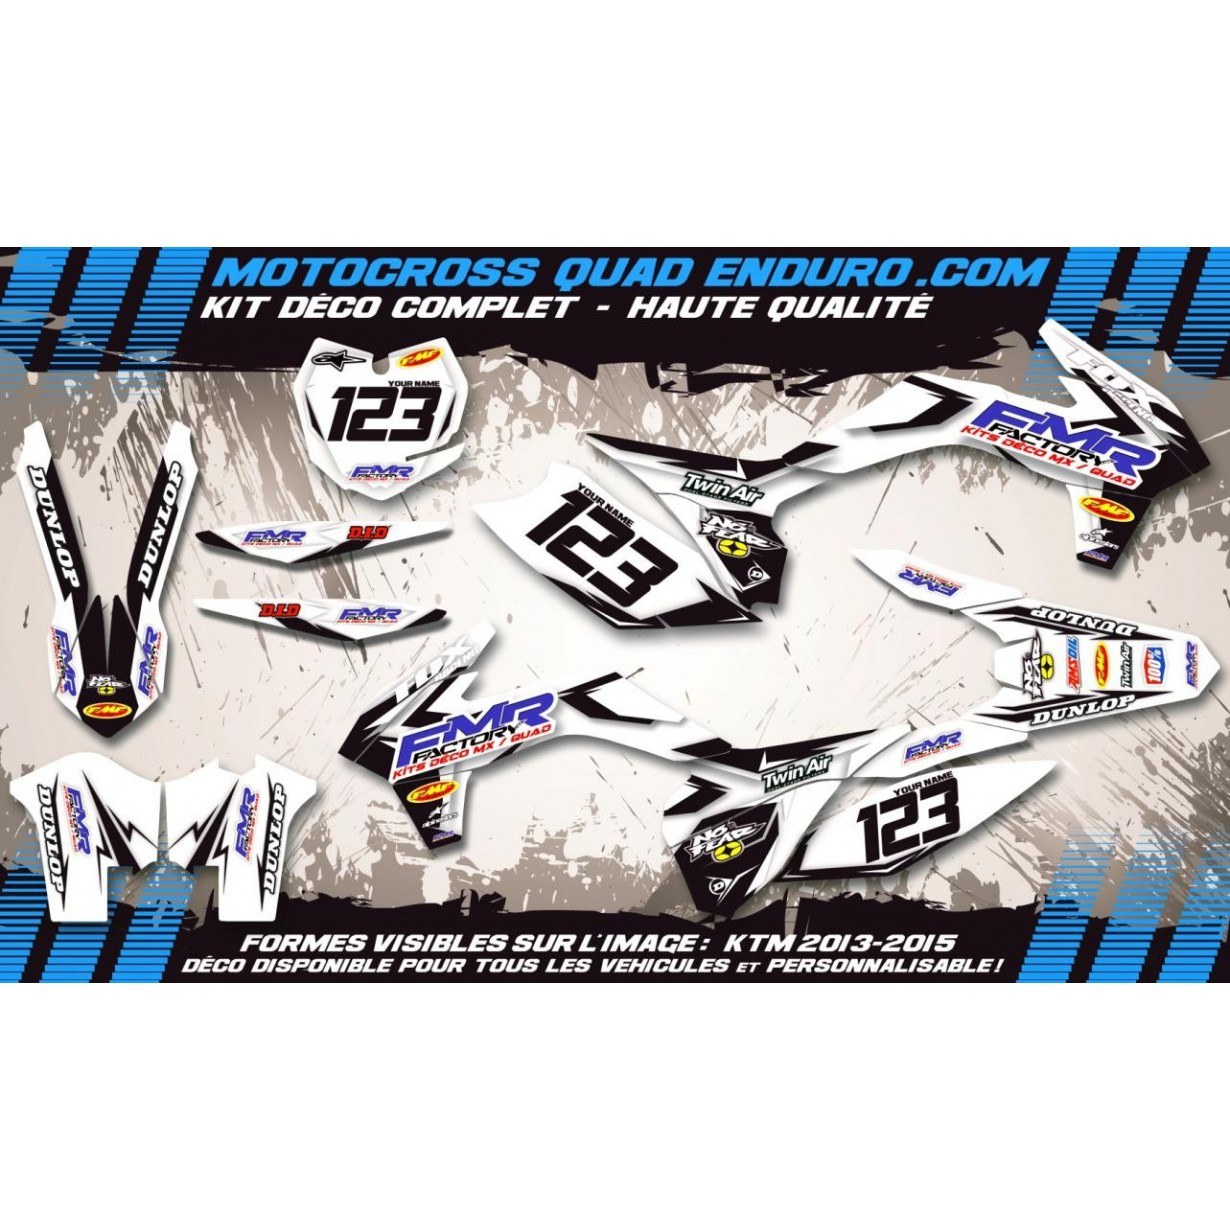 KIT DÉCO Perso 450 RMZ 2018 Fmr Factory WT Edition MA13WT